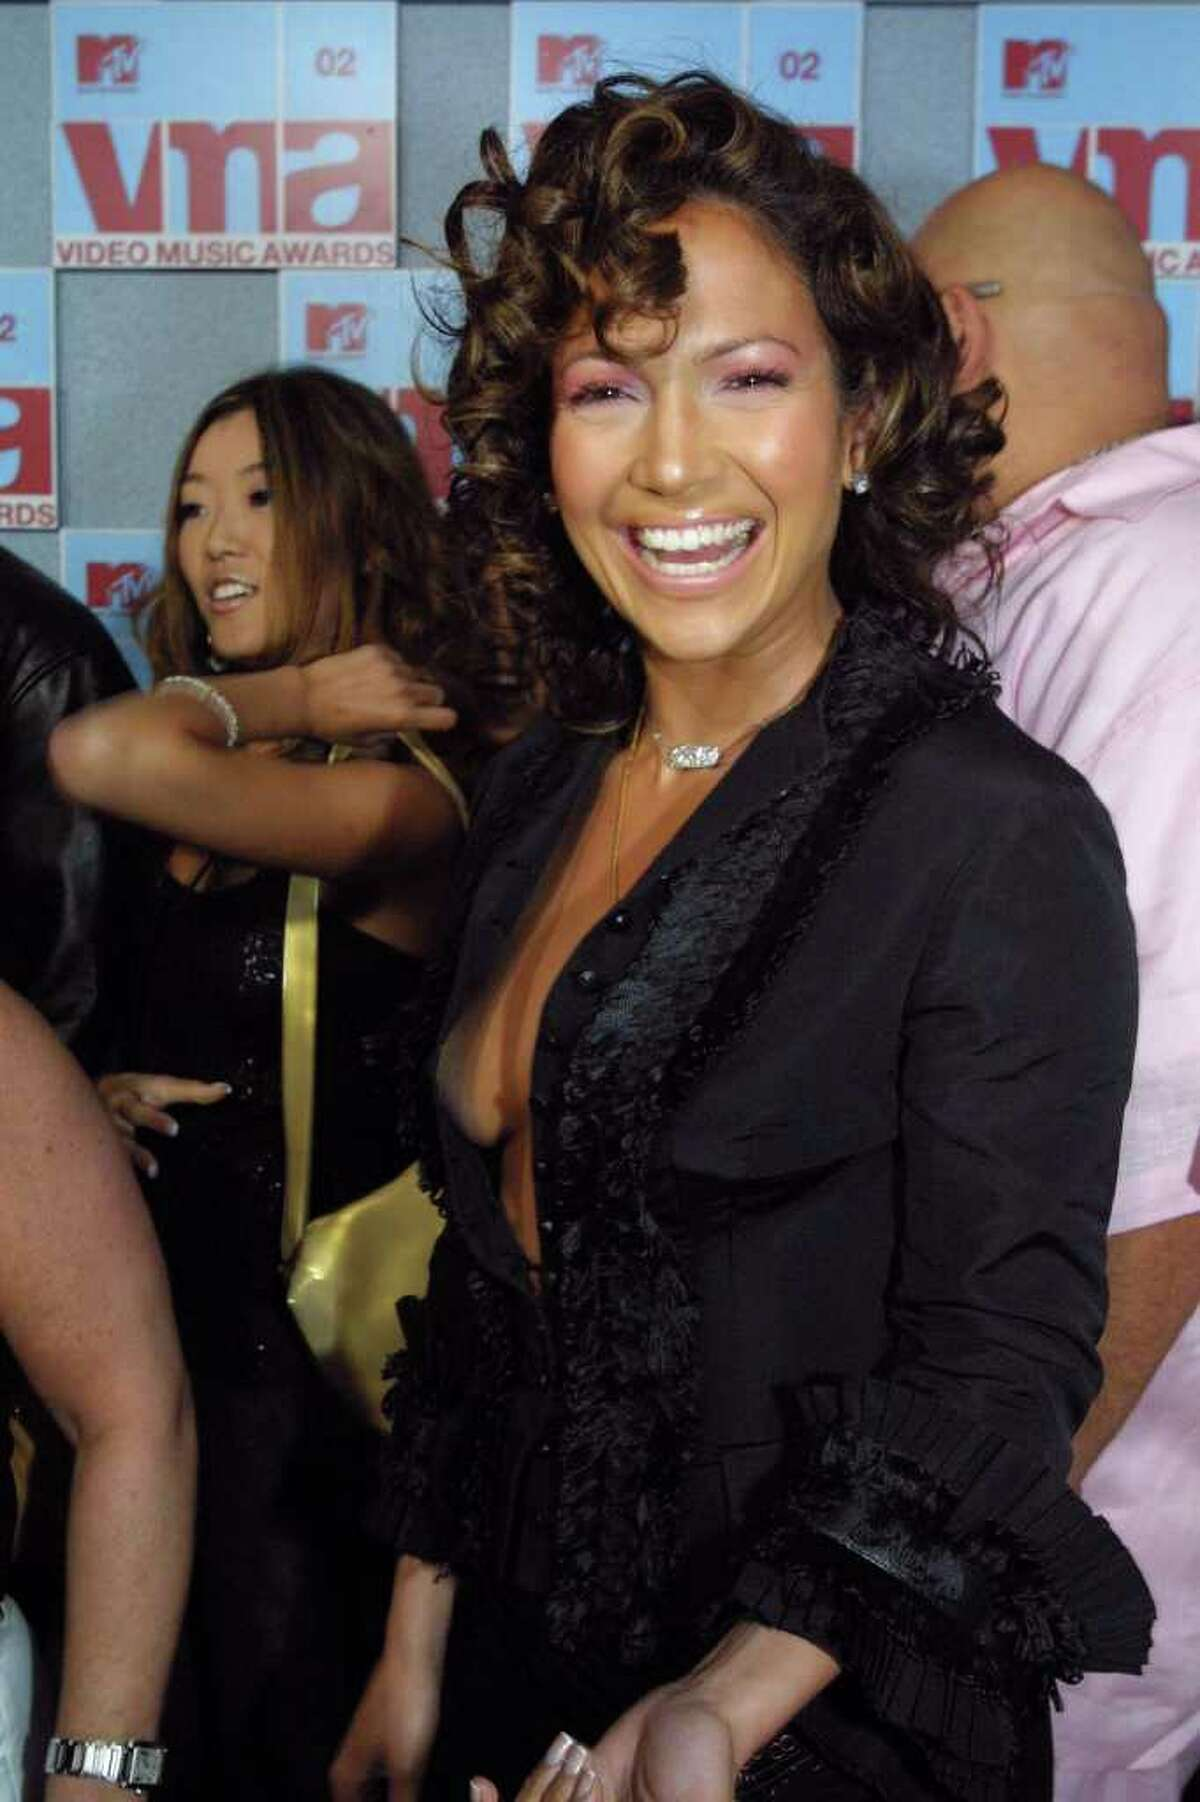 Jennifer Lopez, nominated for Best Hip-Hop video, arrives for the MTV Video Music Awards at New York's Radio City Music Hall, Thursday, Aug. 29, 2002.